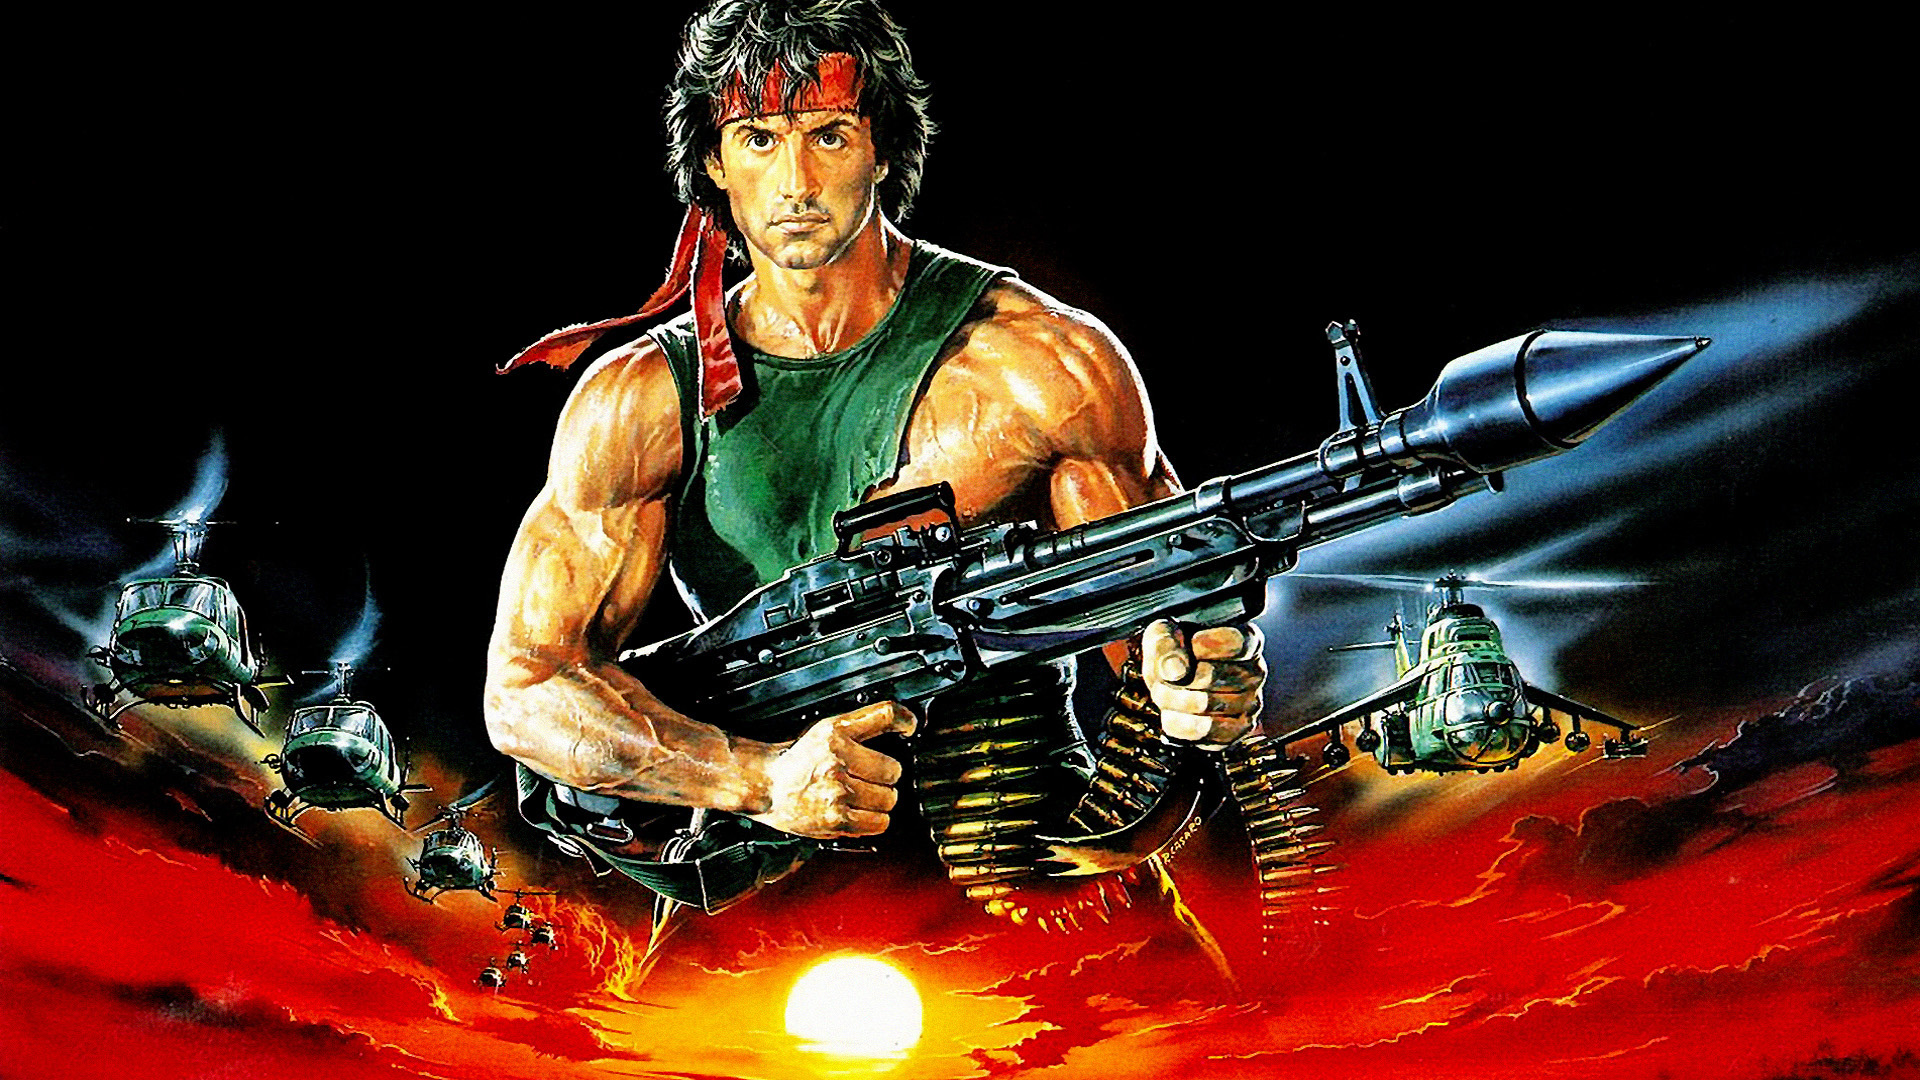 Rambo Background Free Images - Rambo First Blood Part Ii Banner - HD Wallpaper